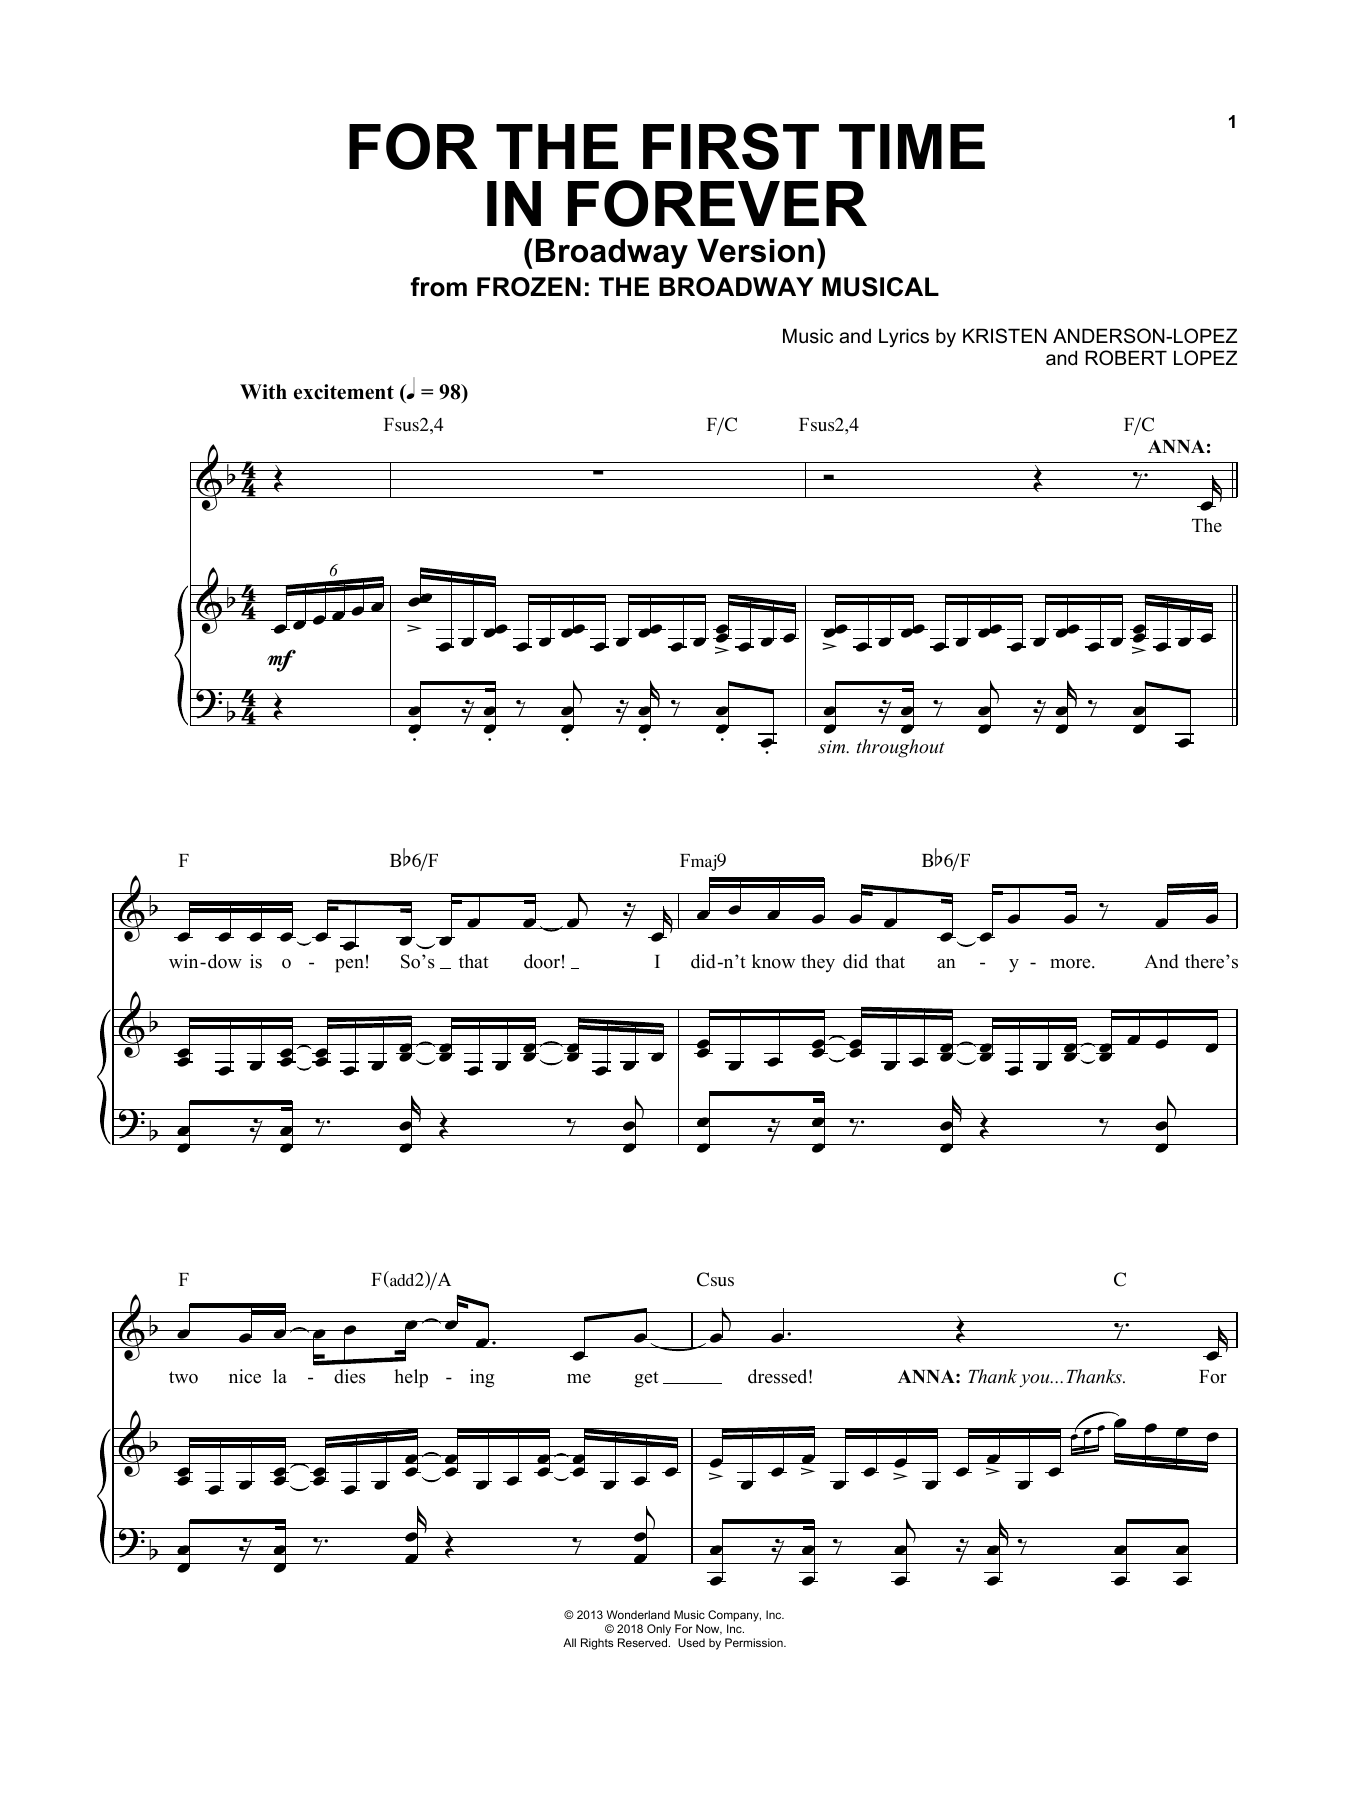 Kristen Anderson-Lopez & Robert Lopez For The First Time In Forever (from Frozen: The Broadway Musical) sheet music notes and chords. Download Printable PDF.